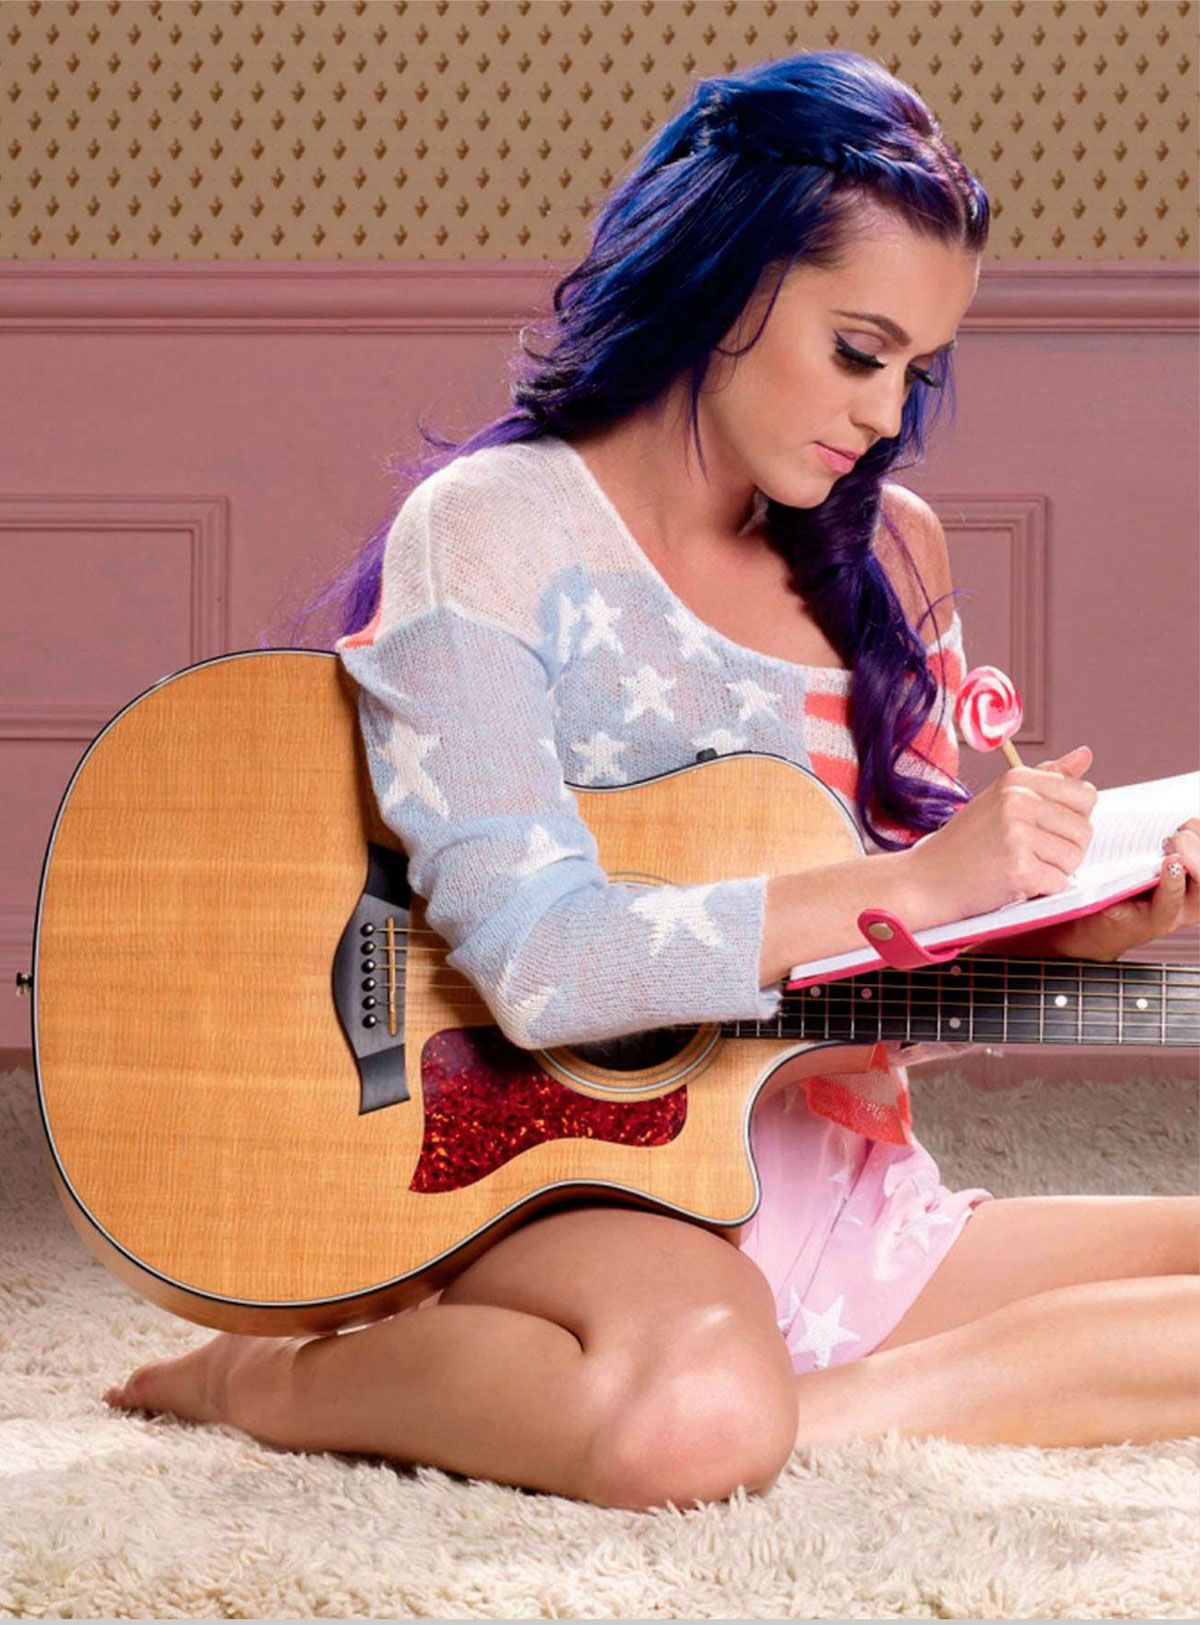 Katy Perry *love this photo of her*